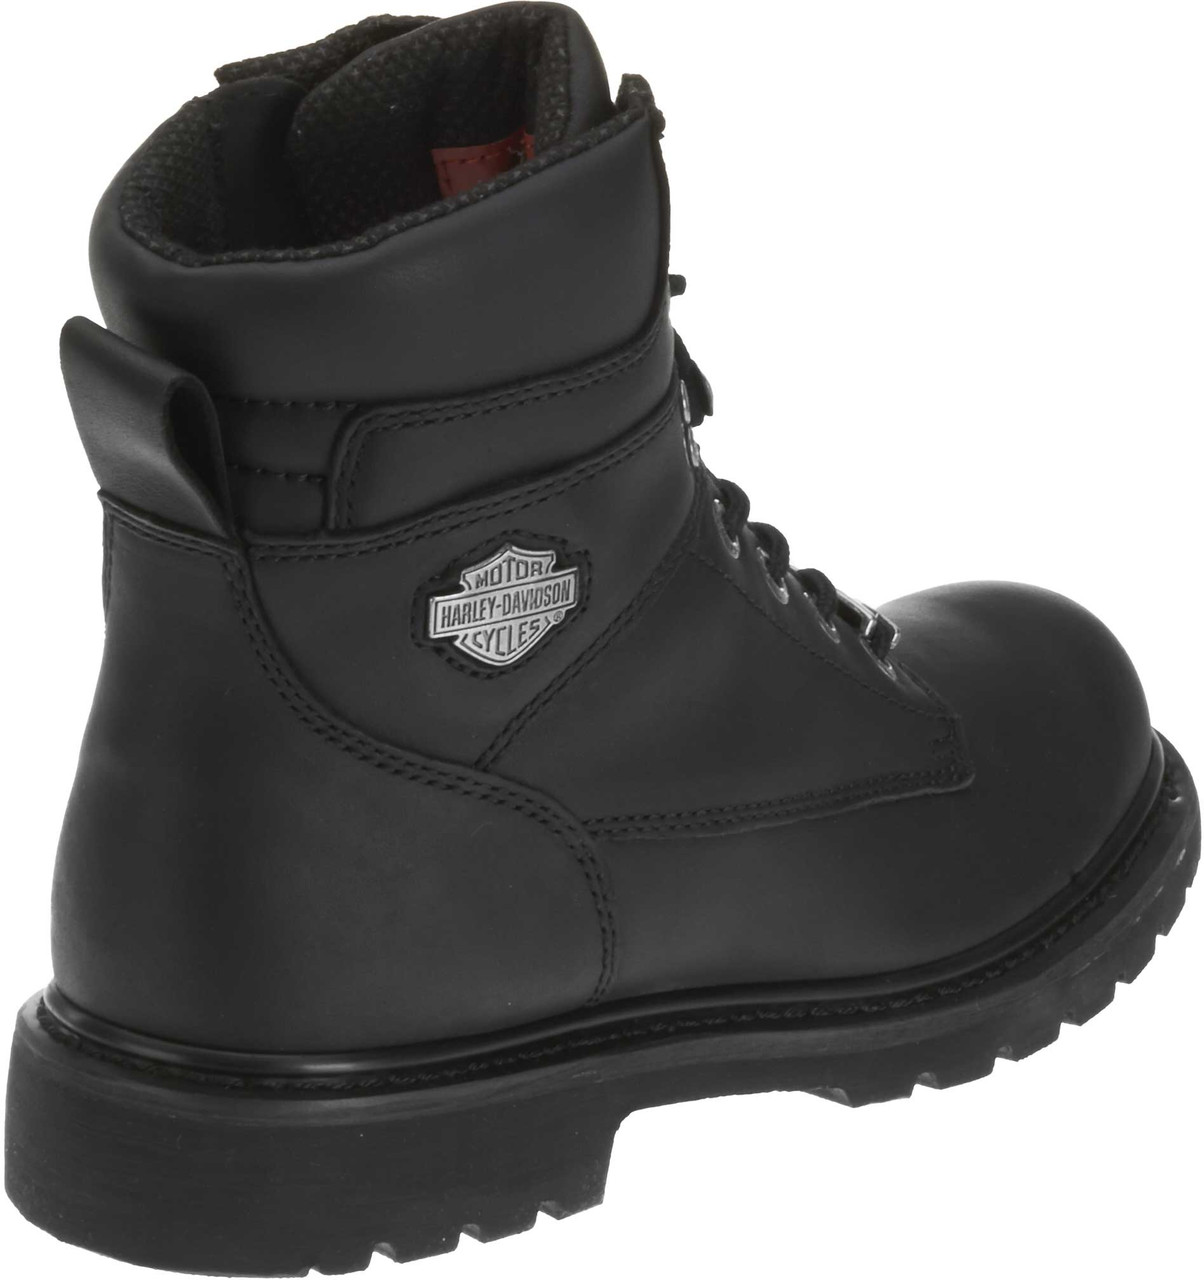 93b2fb27ca0 Harley-Davidson® Wolverine Men's Austwell 6-Inch Lace-Up Motorcycle Boots  D94194